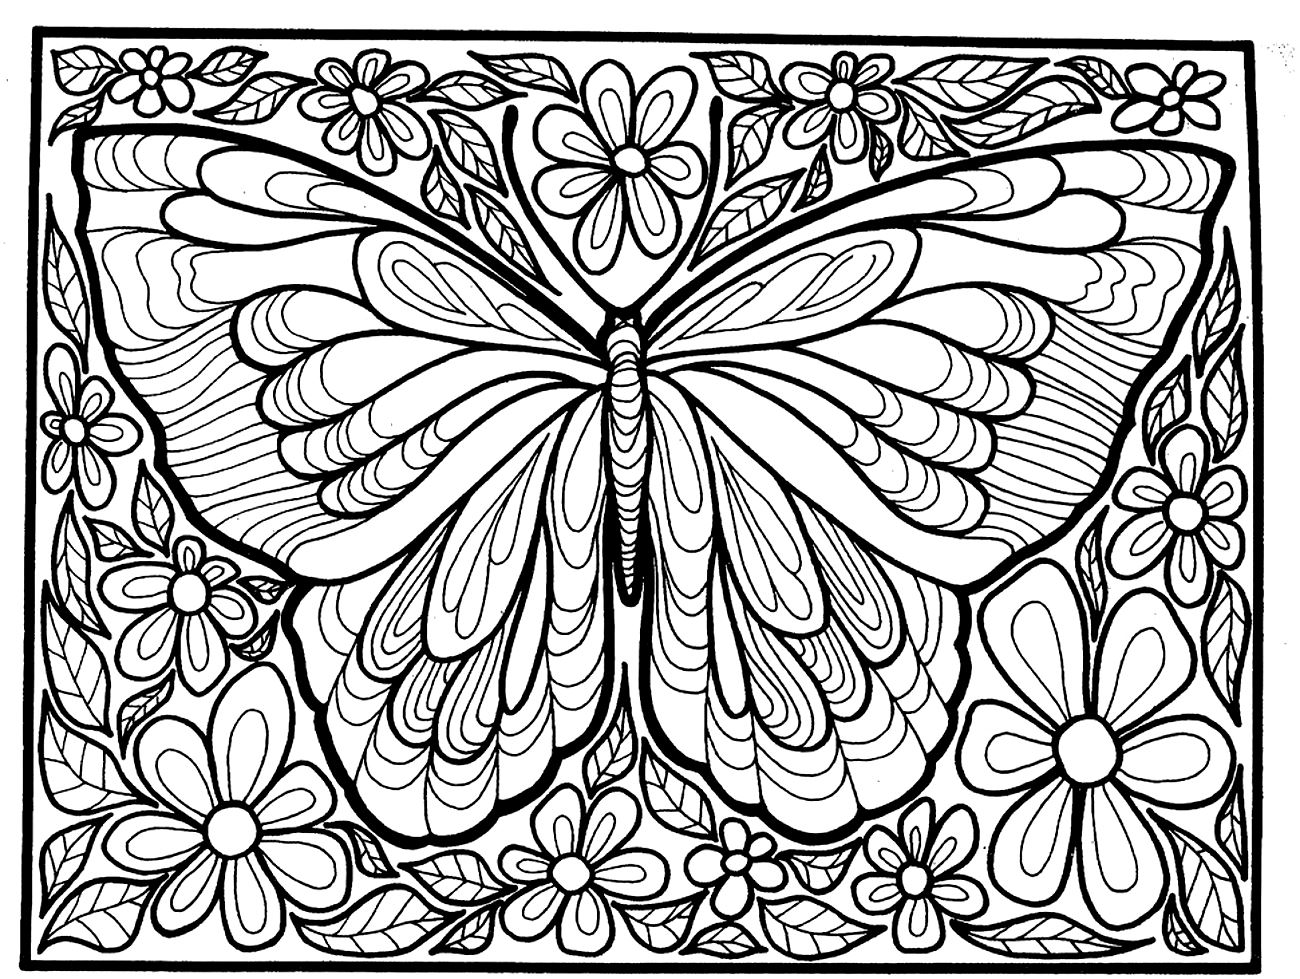 Big butterfly butterflies insects adult coloring pages Giant coloring books for adults